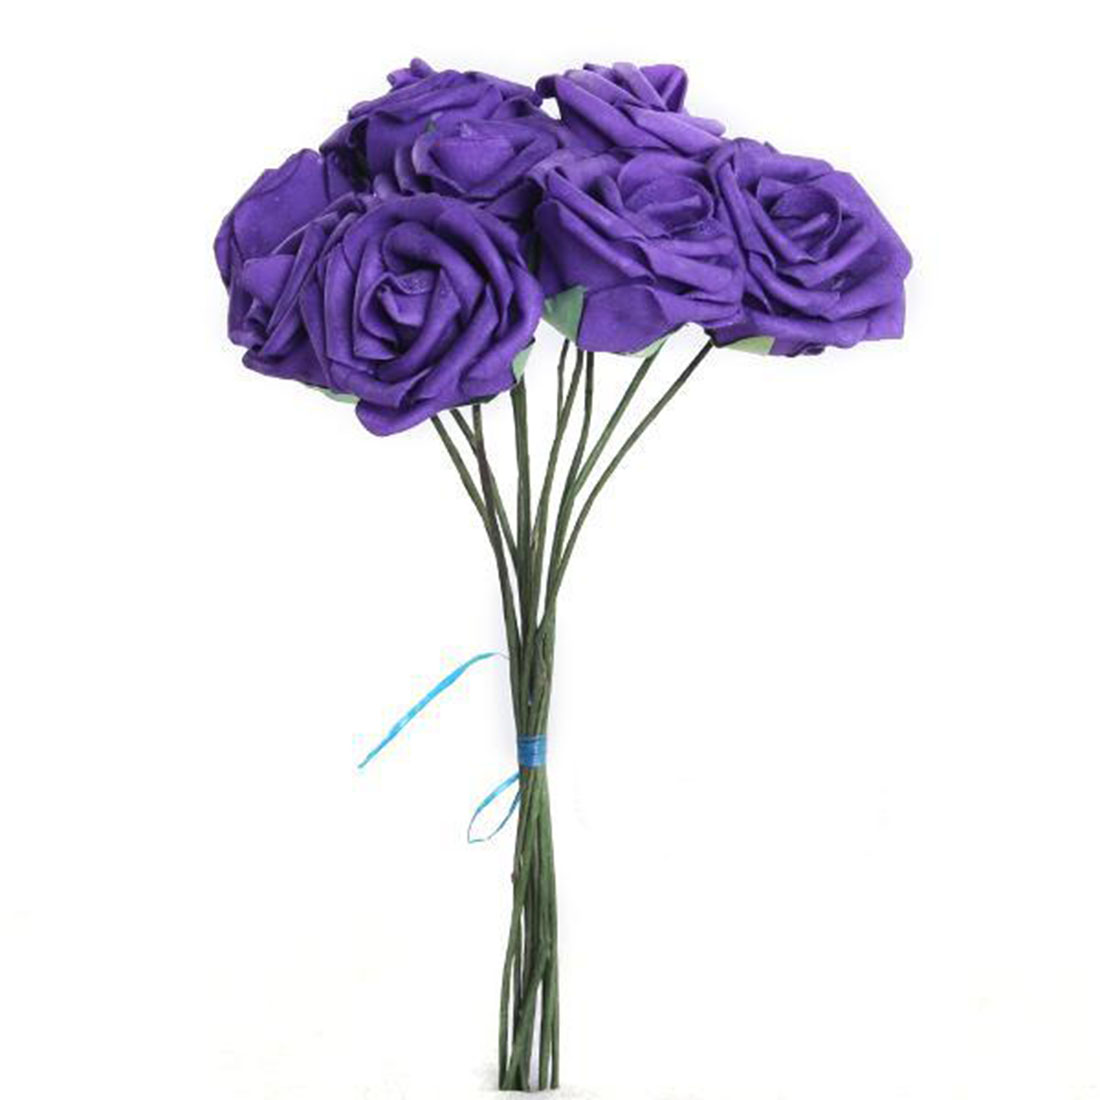 Free shipping new 7cm purple artificial flowers fake rose flower free shipping new 7cm purple artificial flowers fake rose flower bouquet home party decor for wedding decorations 10pcslot in artificial dried flowers izmirmasajfo